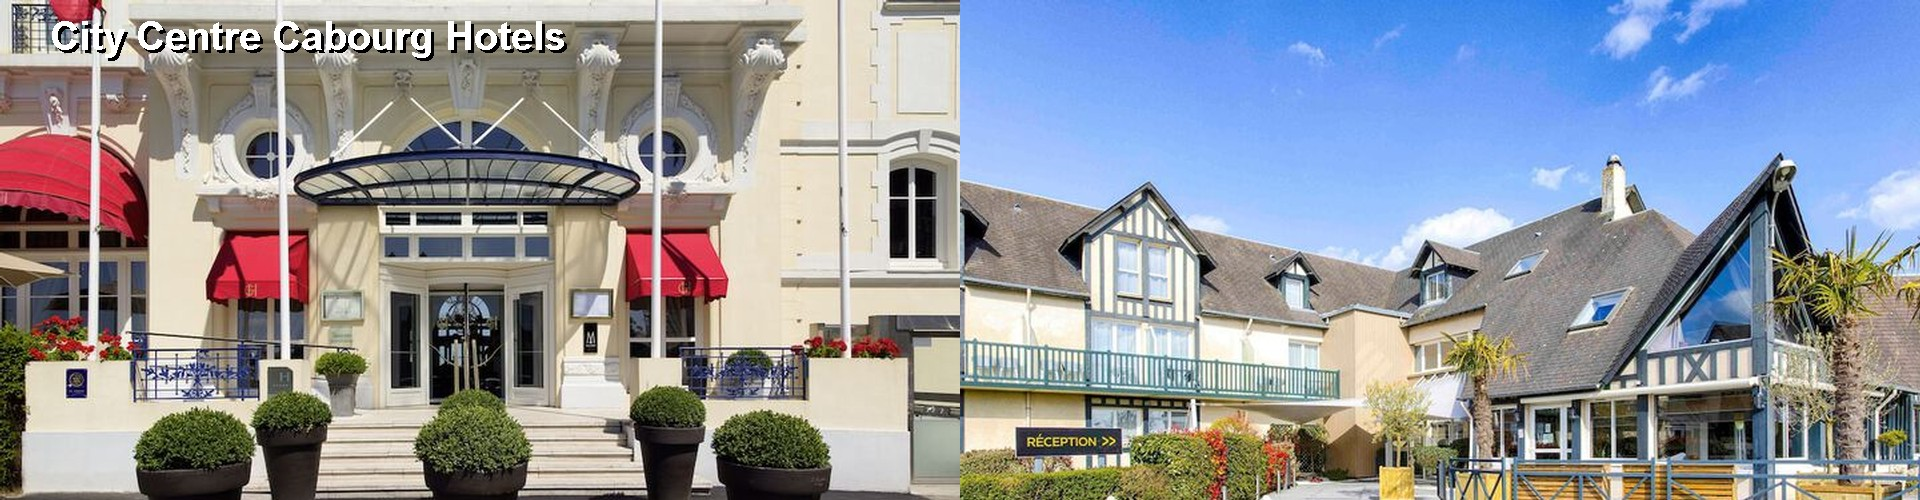 5 Best Hotels near City Centre Cabourg